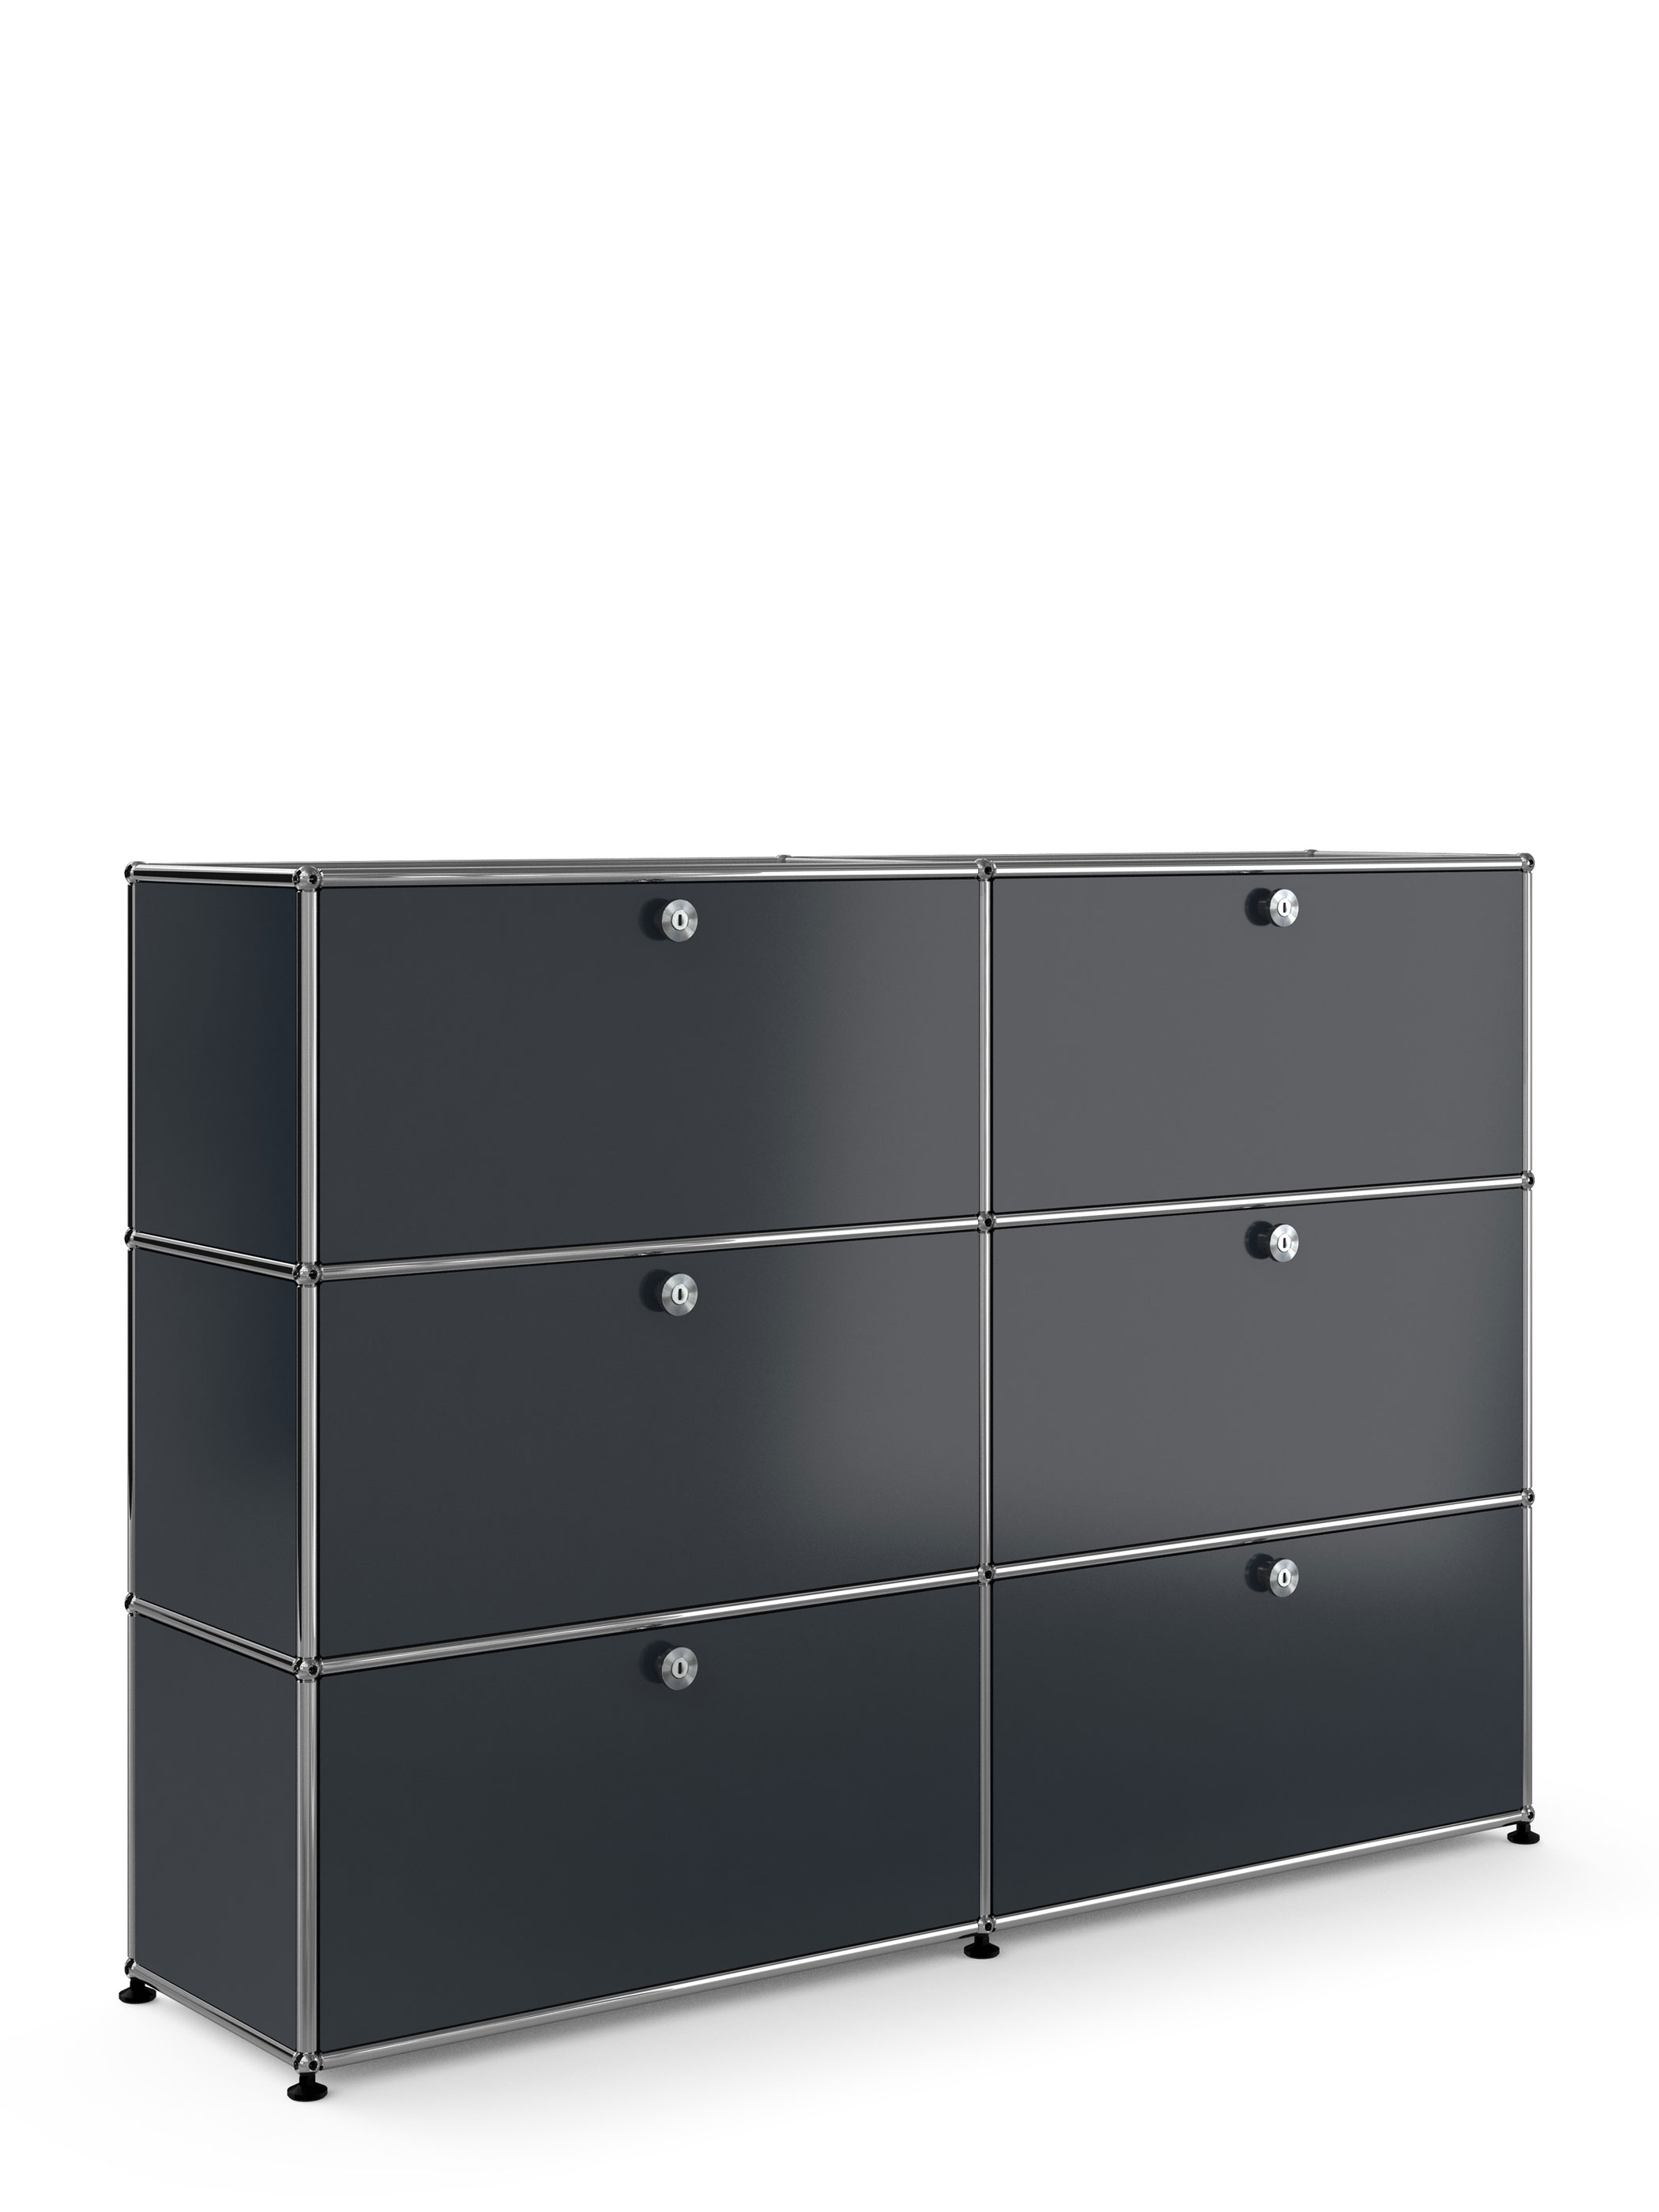 usm usm haller sideboard u6000 produktdetails. Black Bedroom Furniture Sets. Home Design Ideas